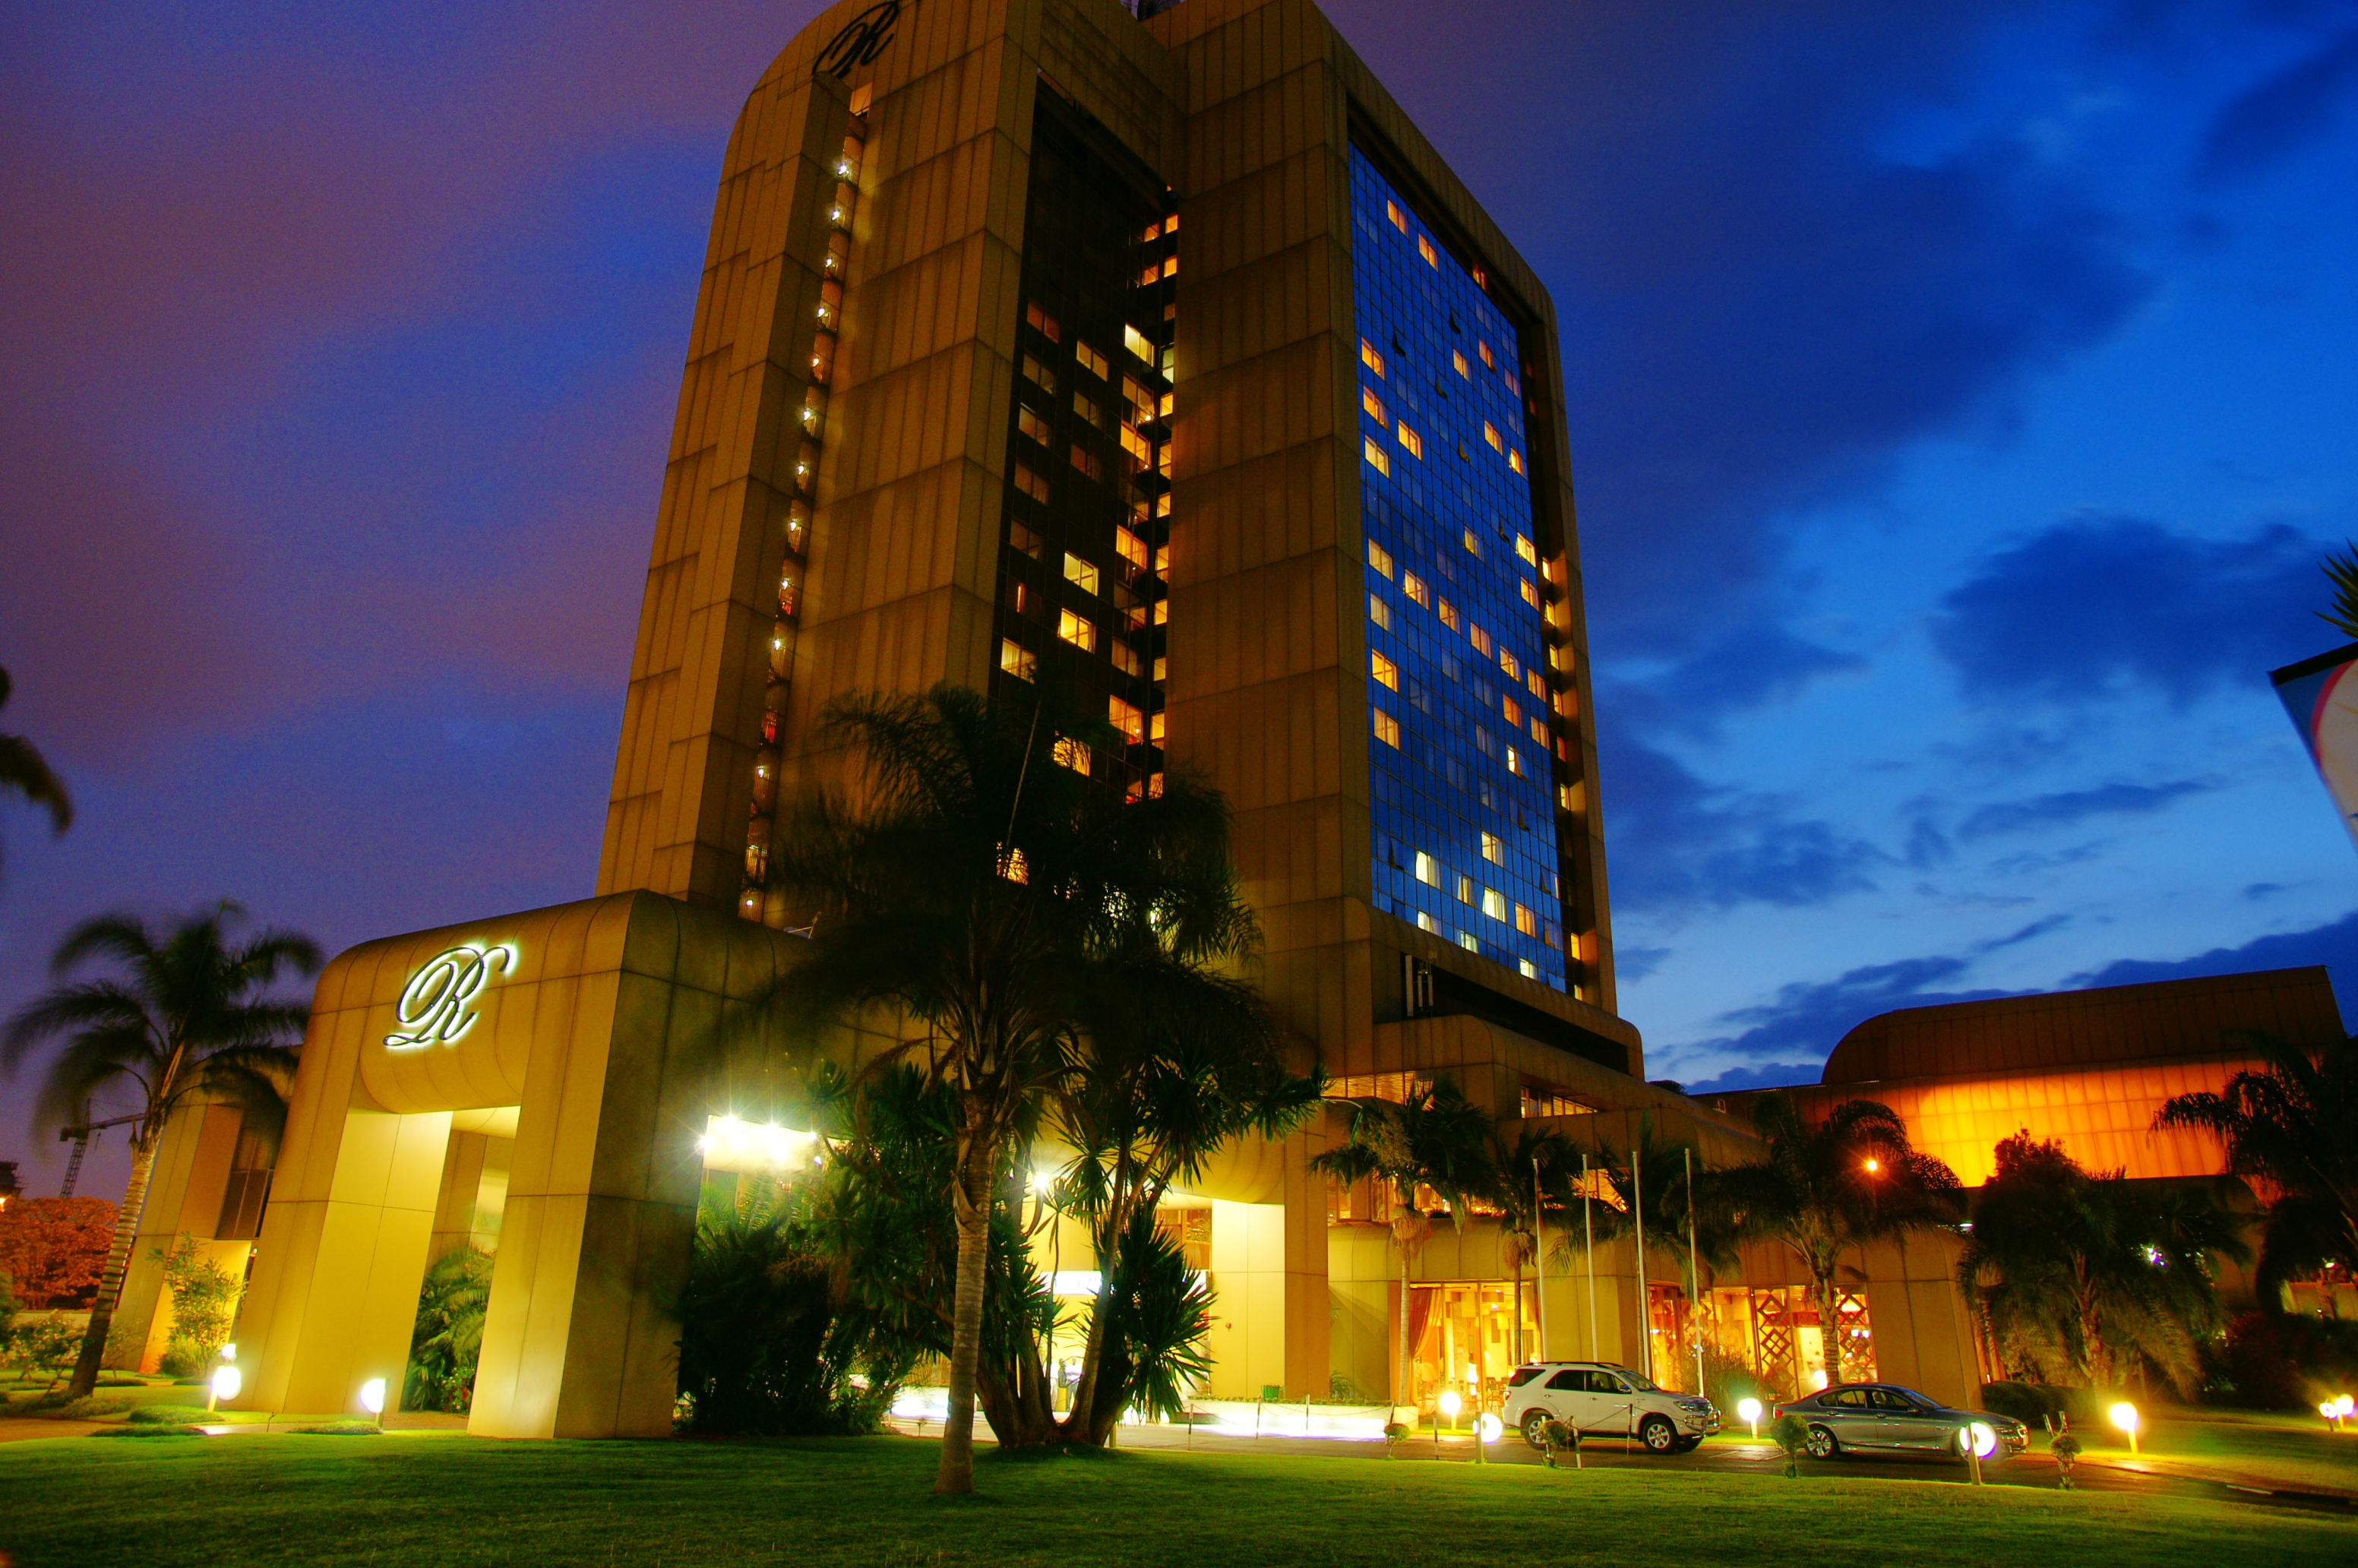 The Rainbow Towers Hotel & Conference Centre, Harare